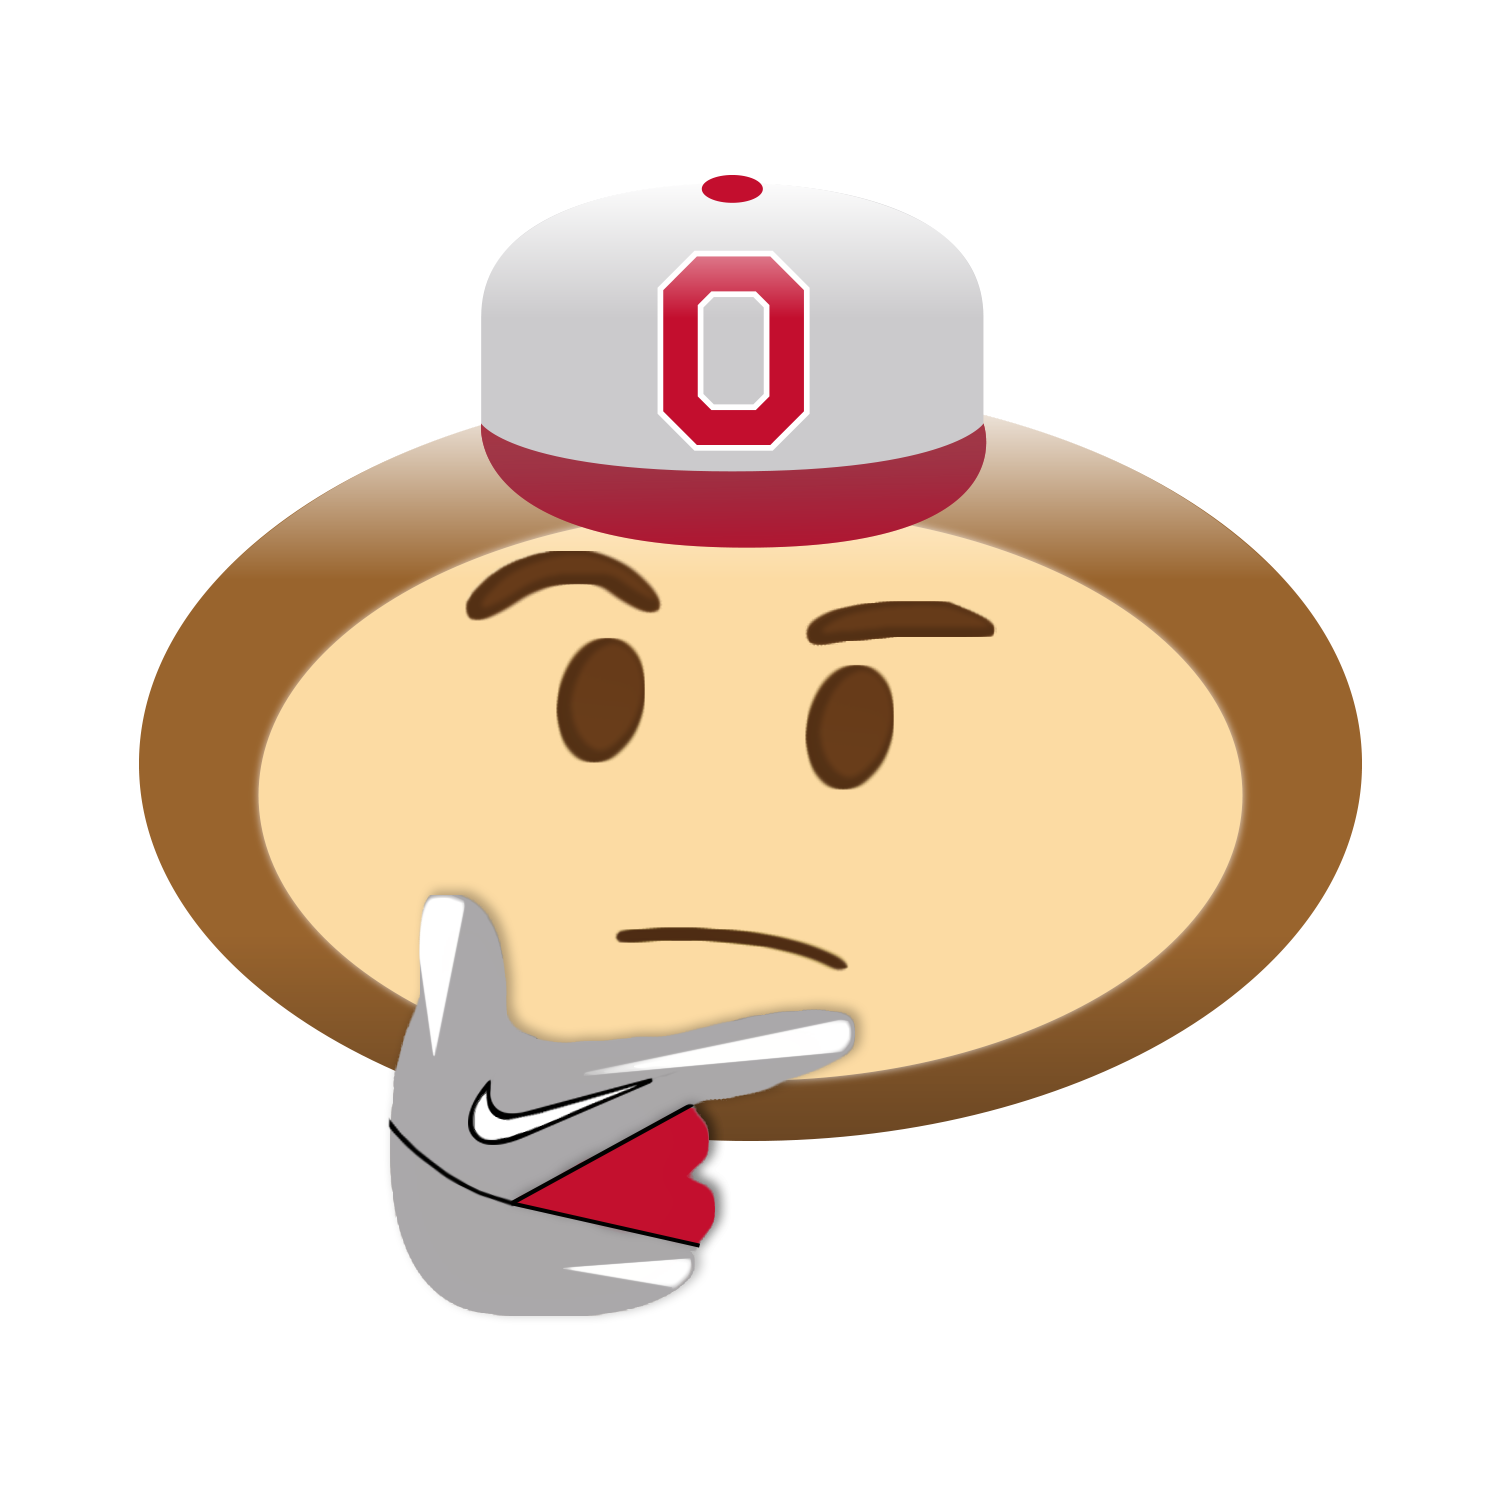 Ohio state football clipart free png transparent stock Brutus Emojis | Eleven Warriors png transparent stock